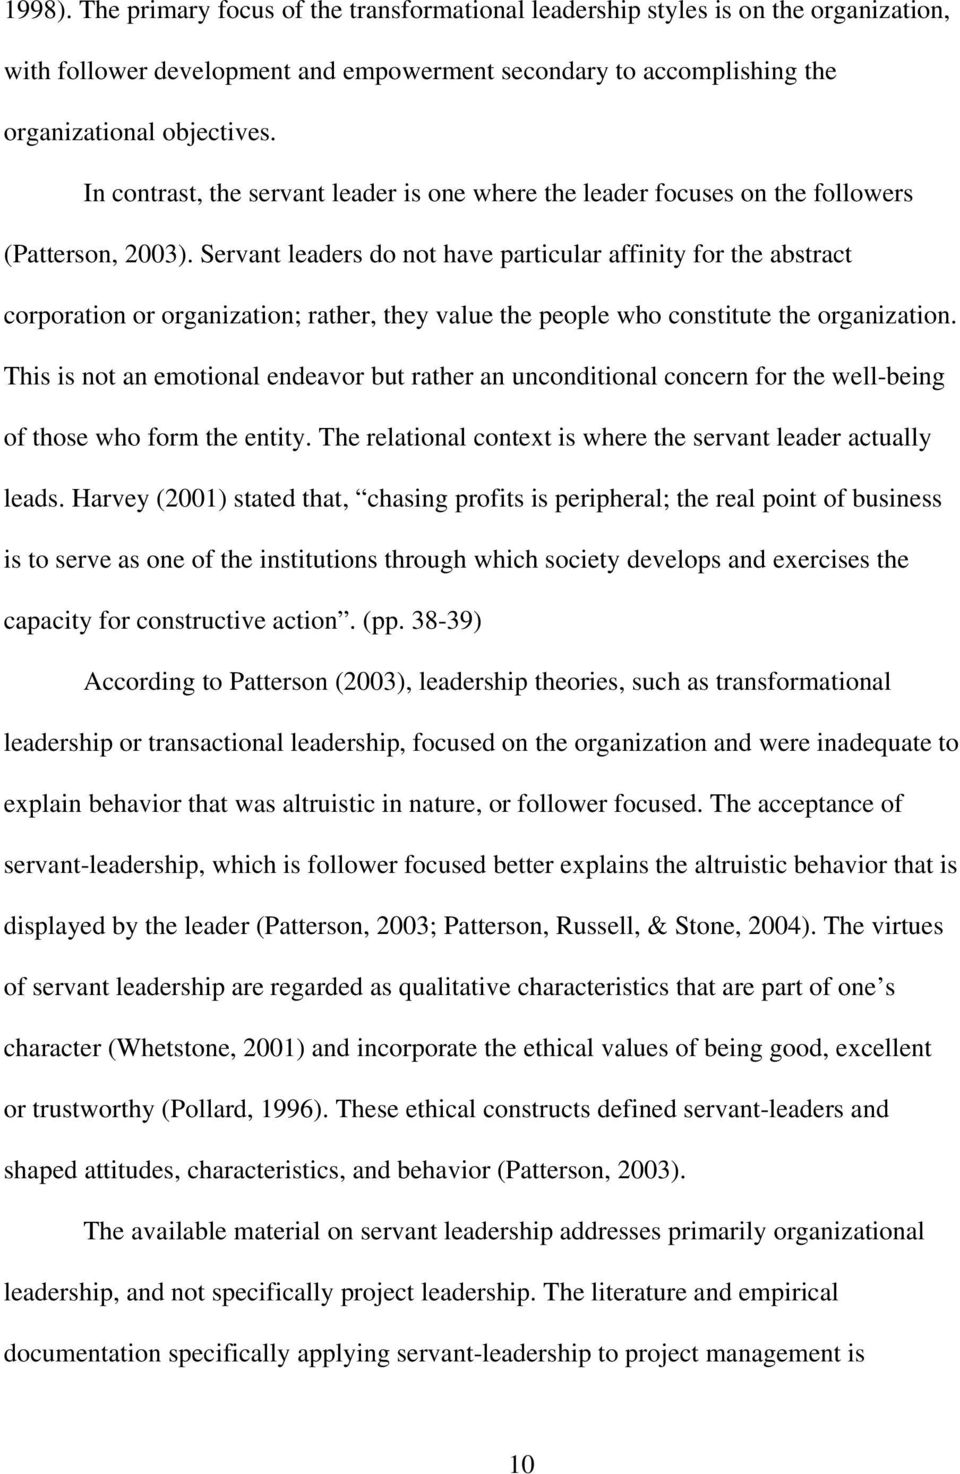 Servant leaders do not have particular affinity for the abstract corporation or organization; rather, they value the people who constitute the organization.